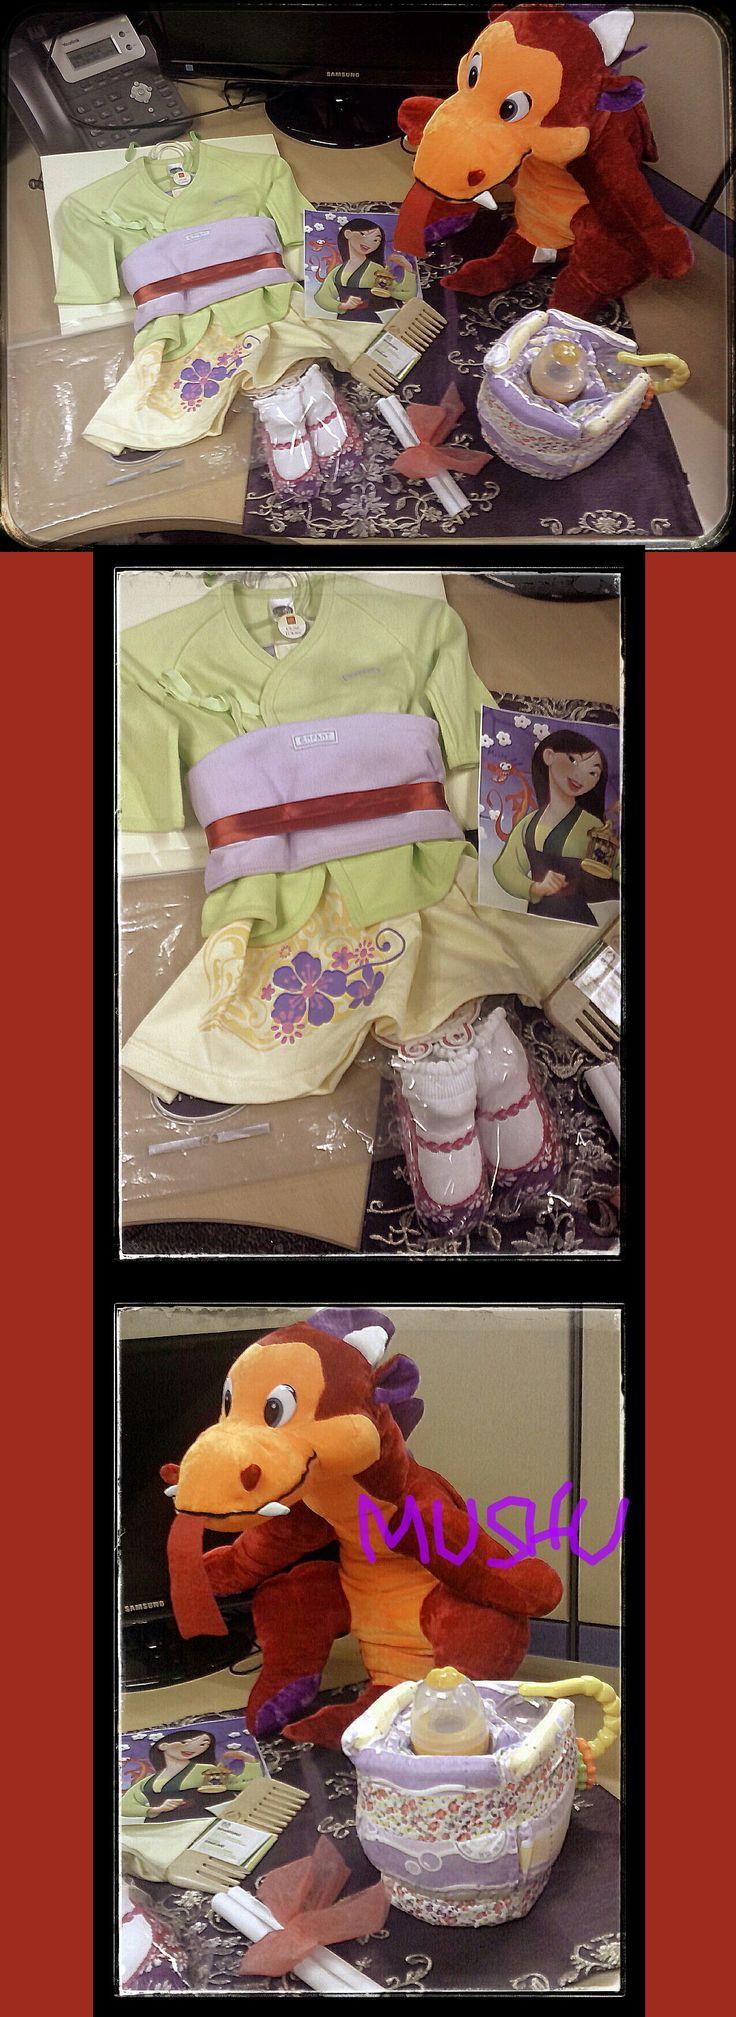 Mulan with Mushu - baby shower - Mulan:   - Enfant green long sleeves tie-side top   - Bebe yellow baby dress   - Enfant violet cloth burp pad   - red ribbon   - baby socks in white & floral pink/purple doll shoes design - other items: - red dragon stuffed toy (Mushu) - purple oriental embroidery design throw pillow case - message in scroll form - Body Shop wooden comb - diaper teapot:   - yellow feeding bottle   - newborn disposable diapers   - rattle   - floral washi tapes